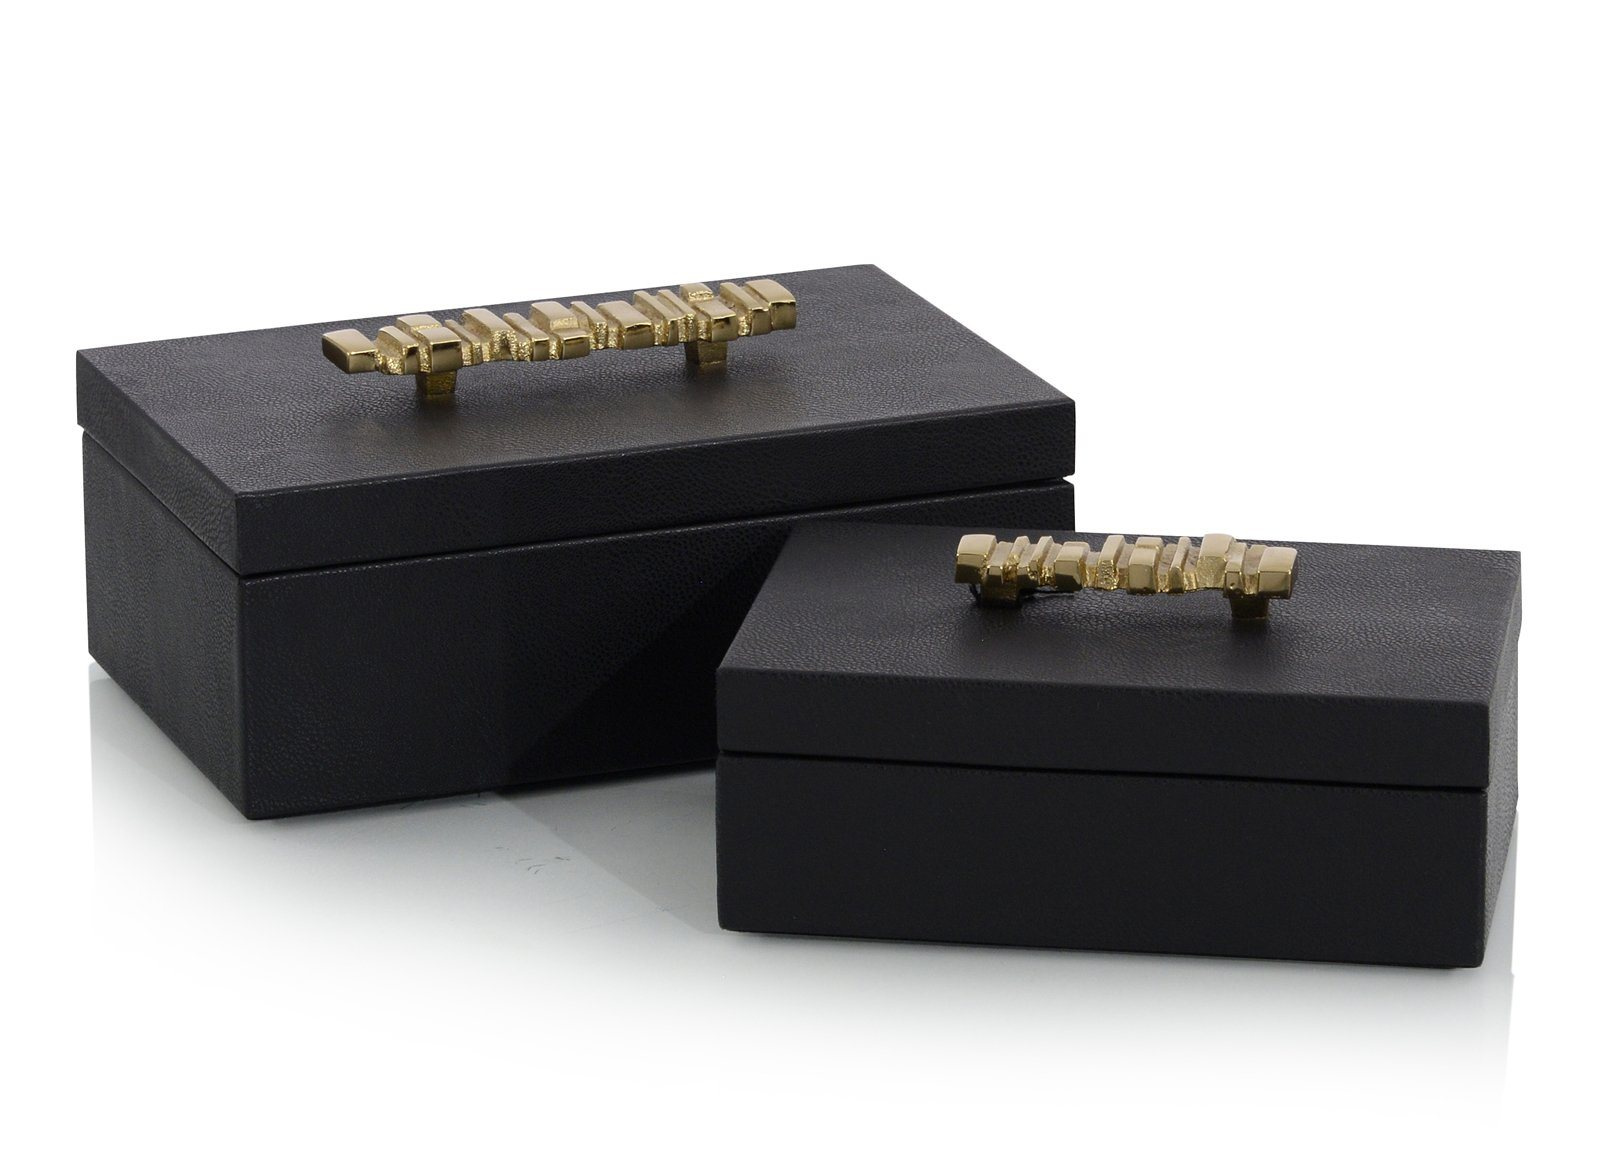 A Set of Two Onyx Antique Grain Leather Boxes